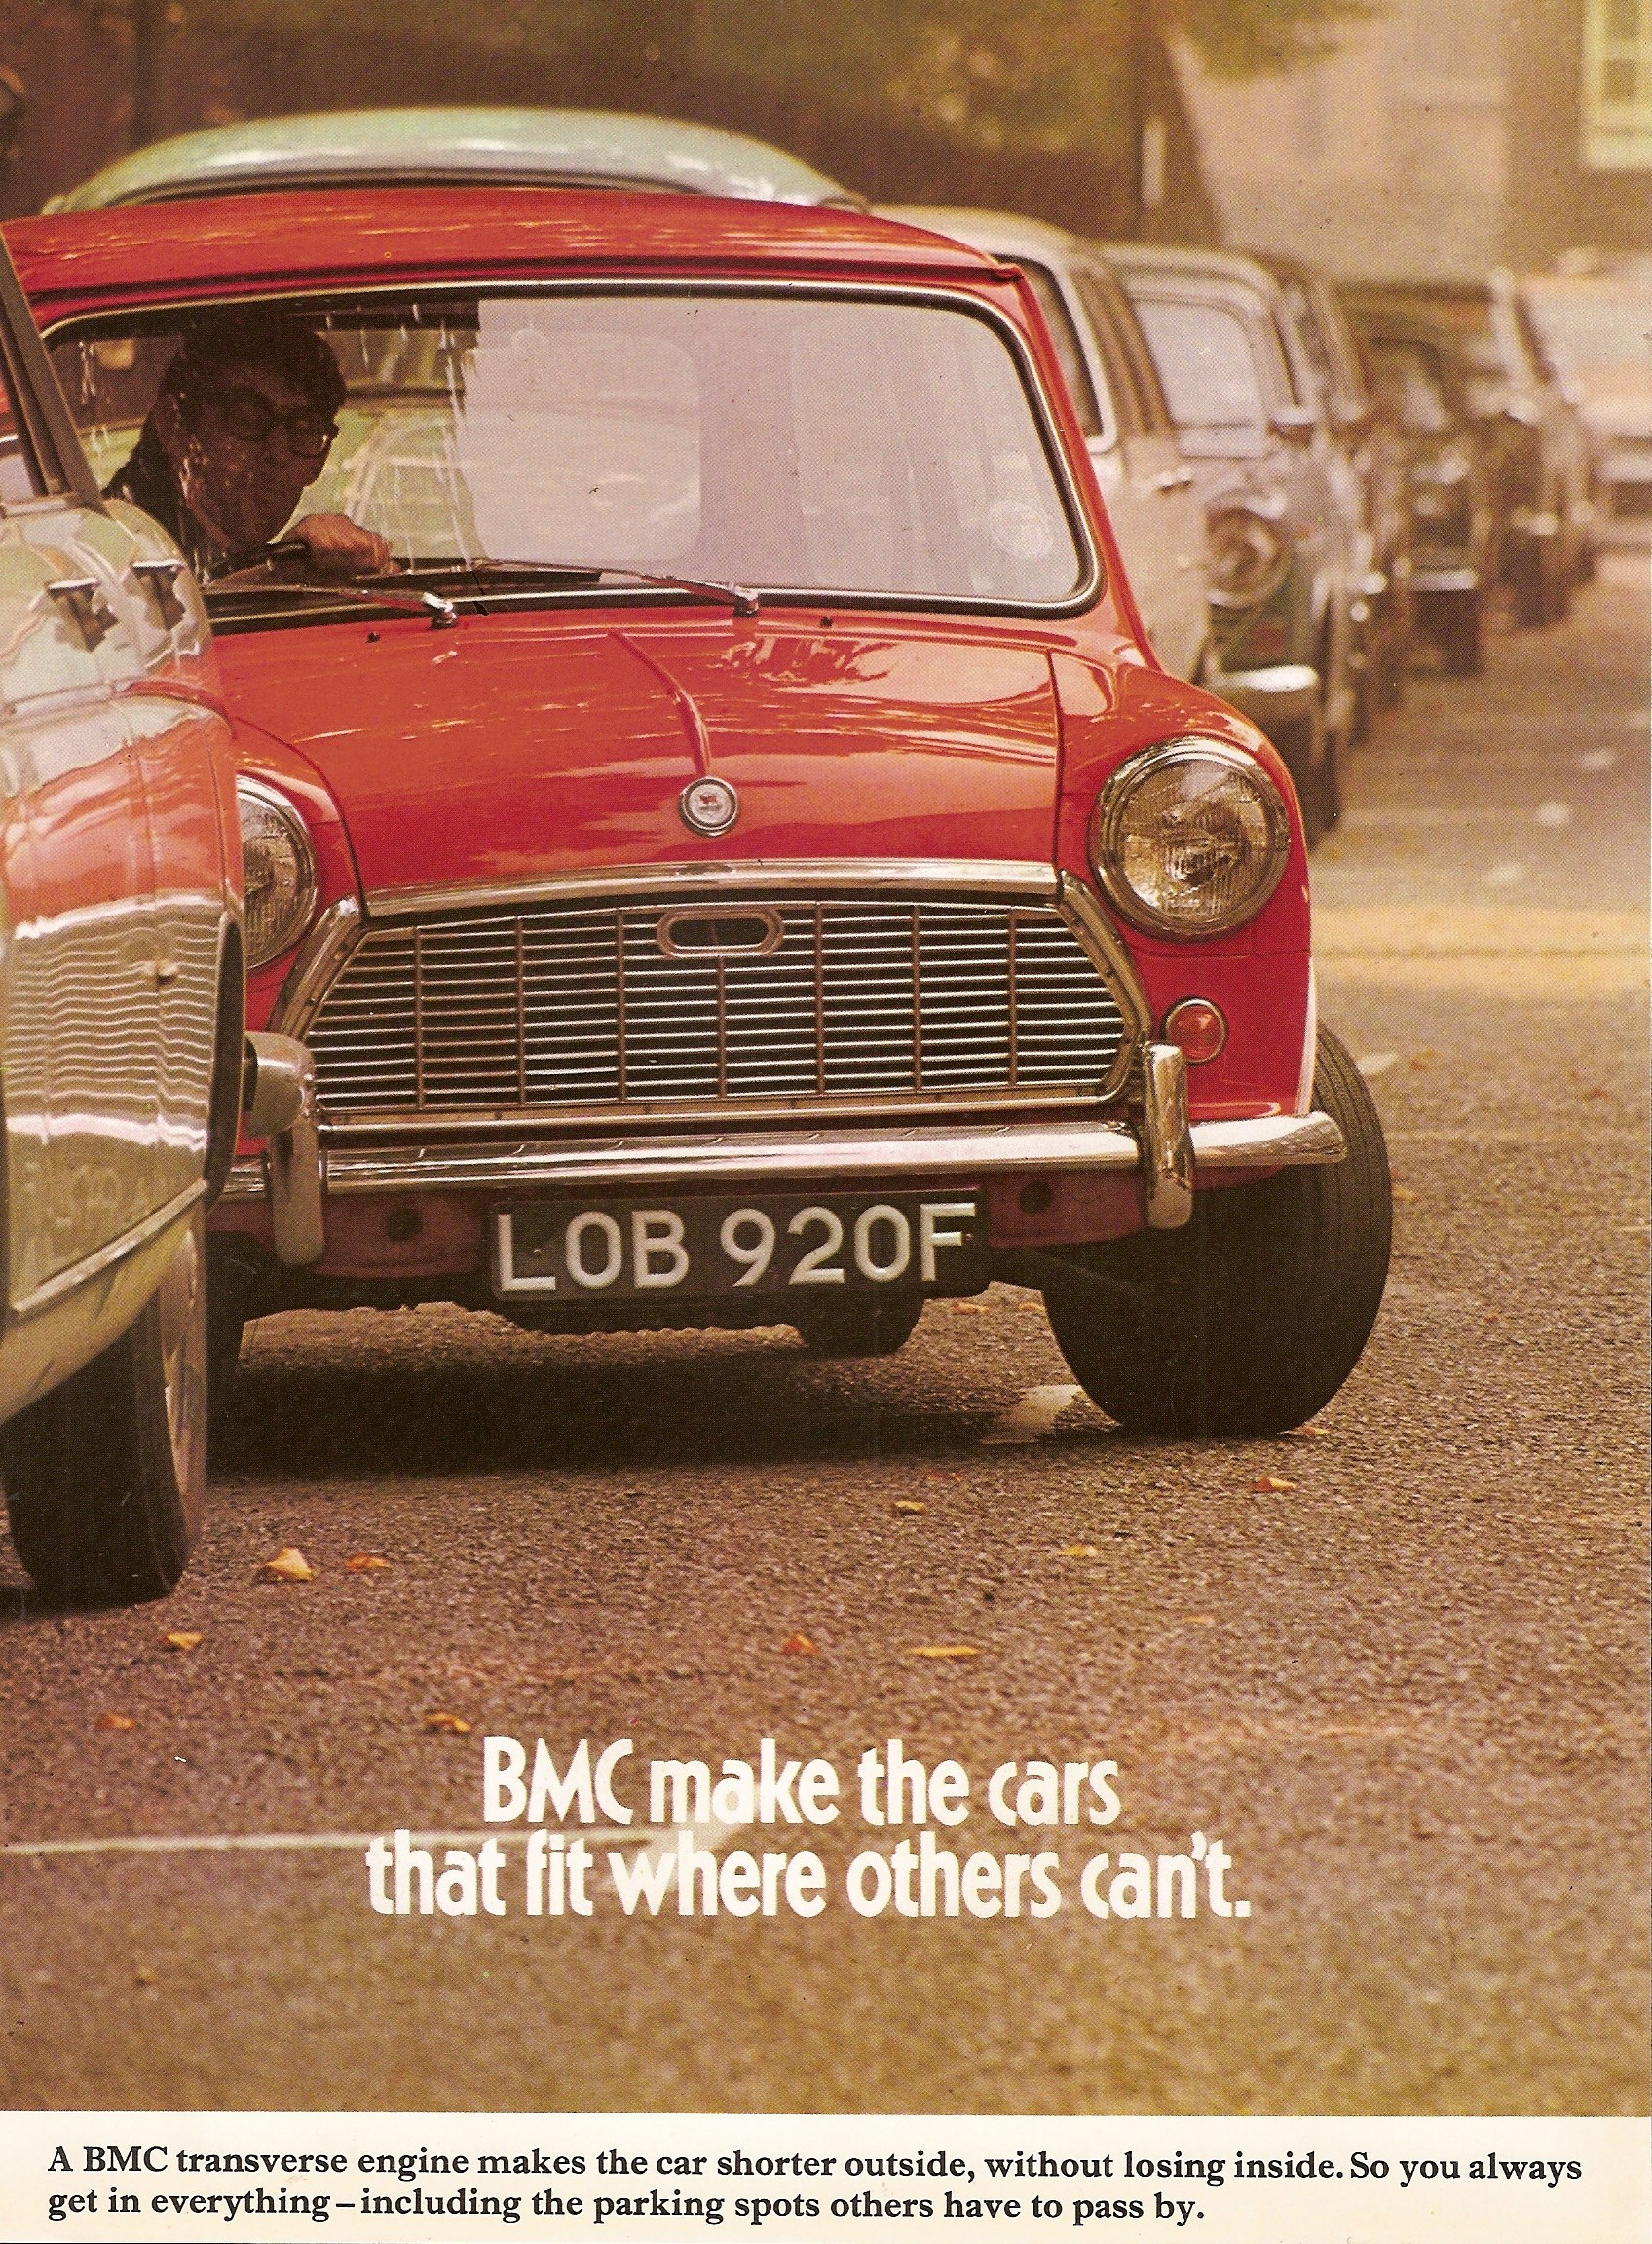 BMC Mini advertising advert